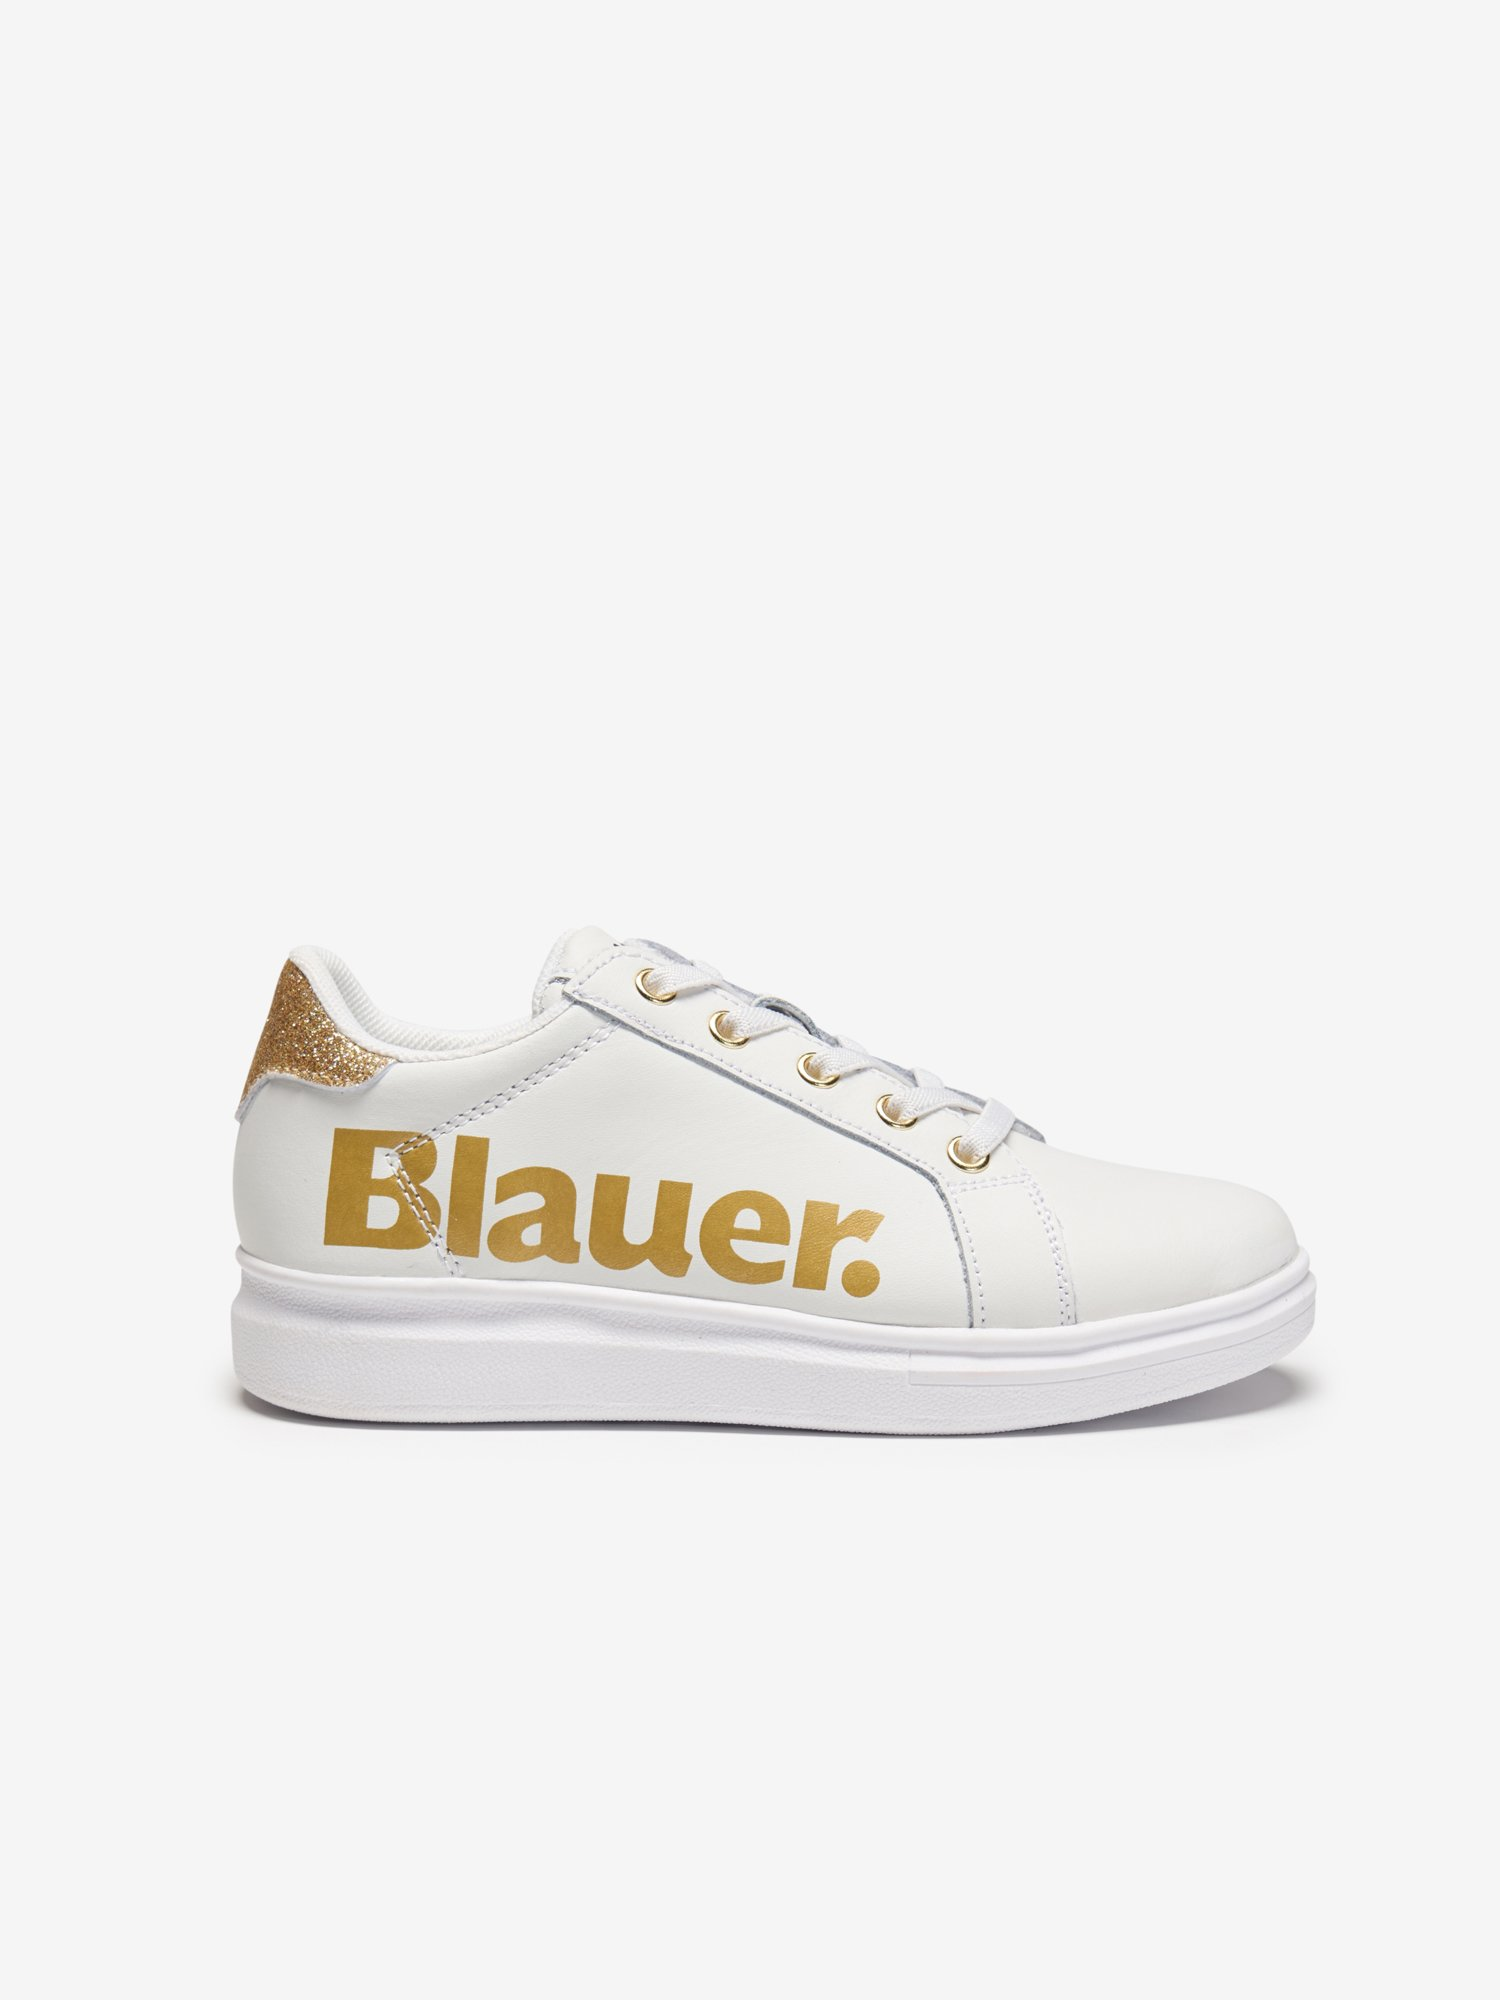 JASMINE LOW TOP TRAINERS - Blauer